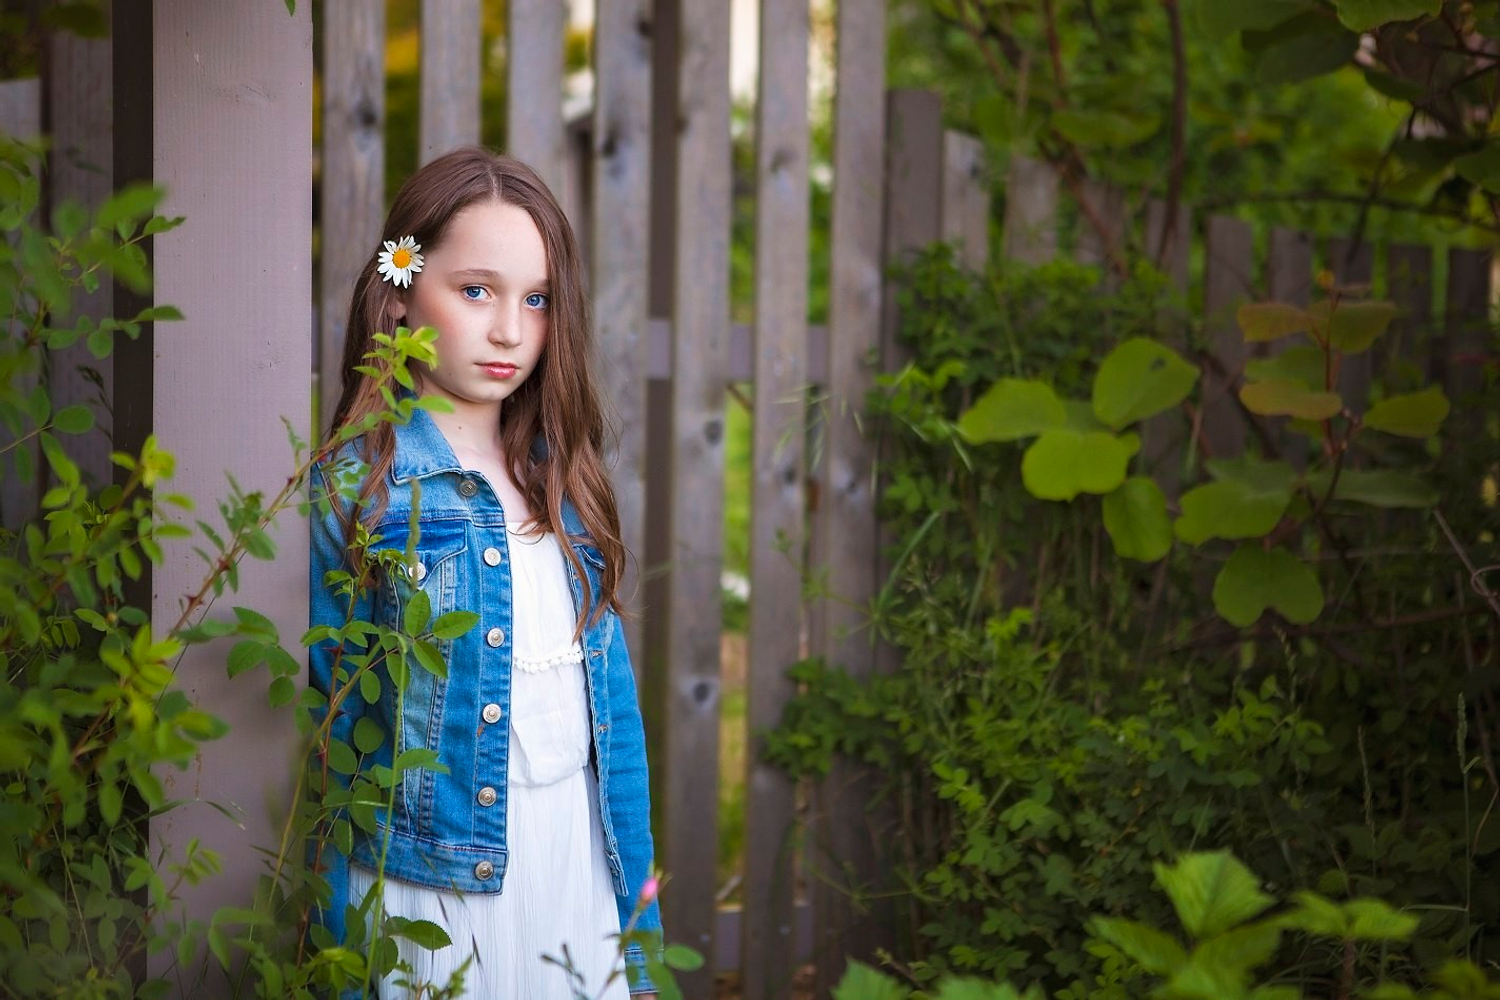 Molly Catron represented by The Tabb Agency